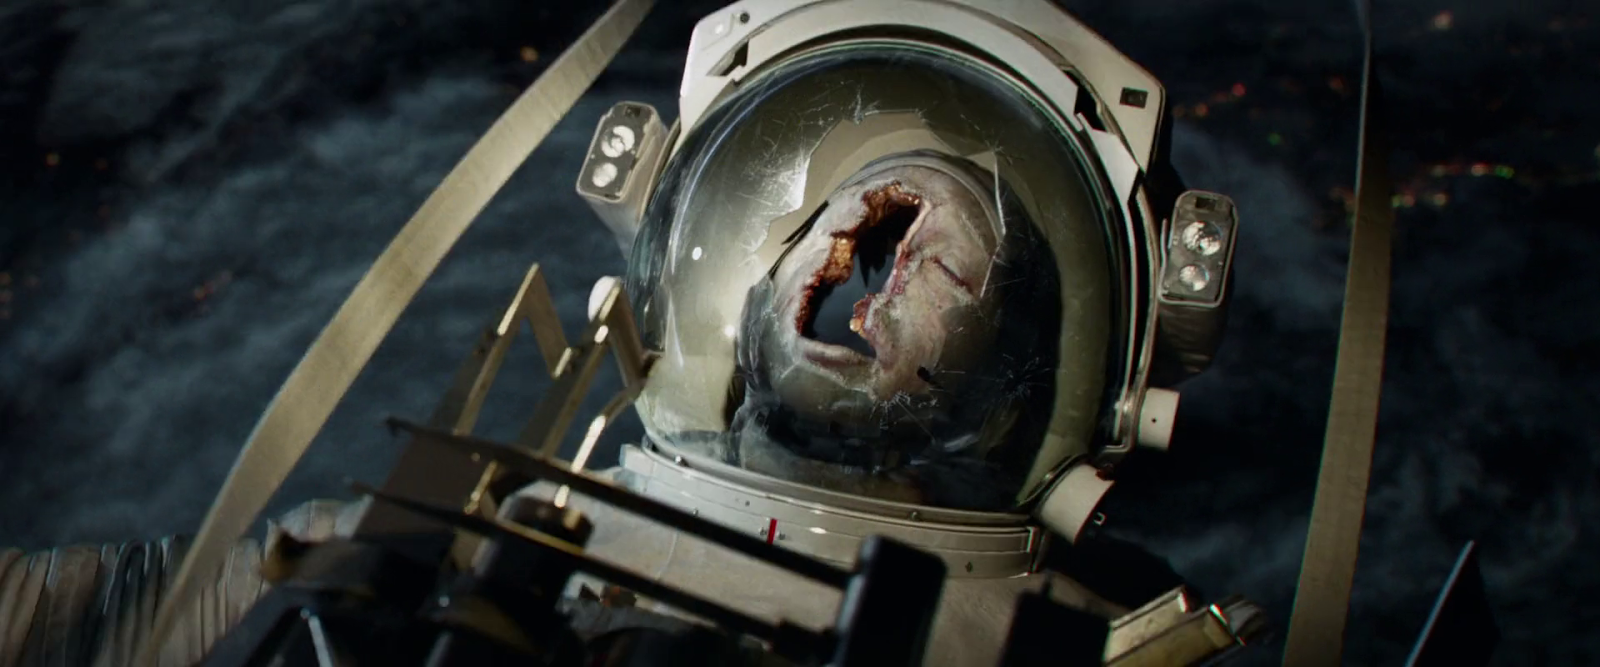 Movie Gravity Dead Astronaut Face (page 5) - Pics about space